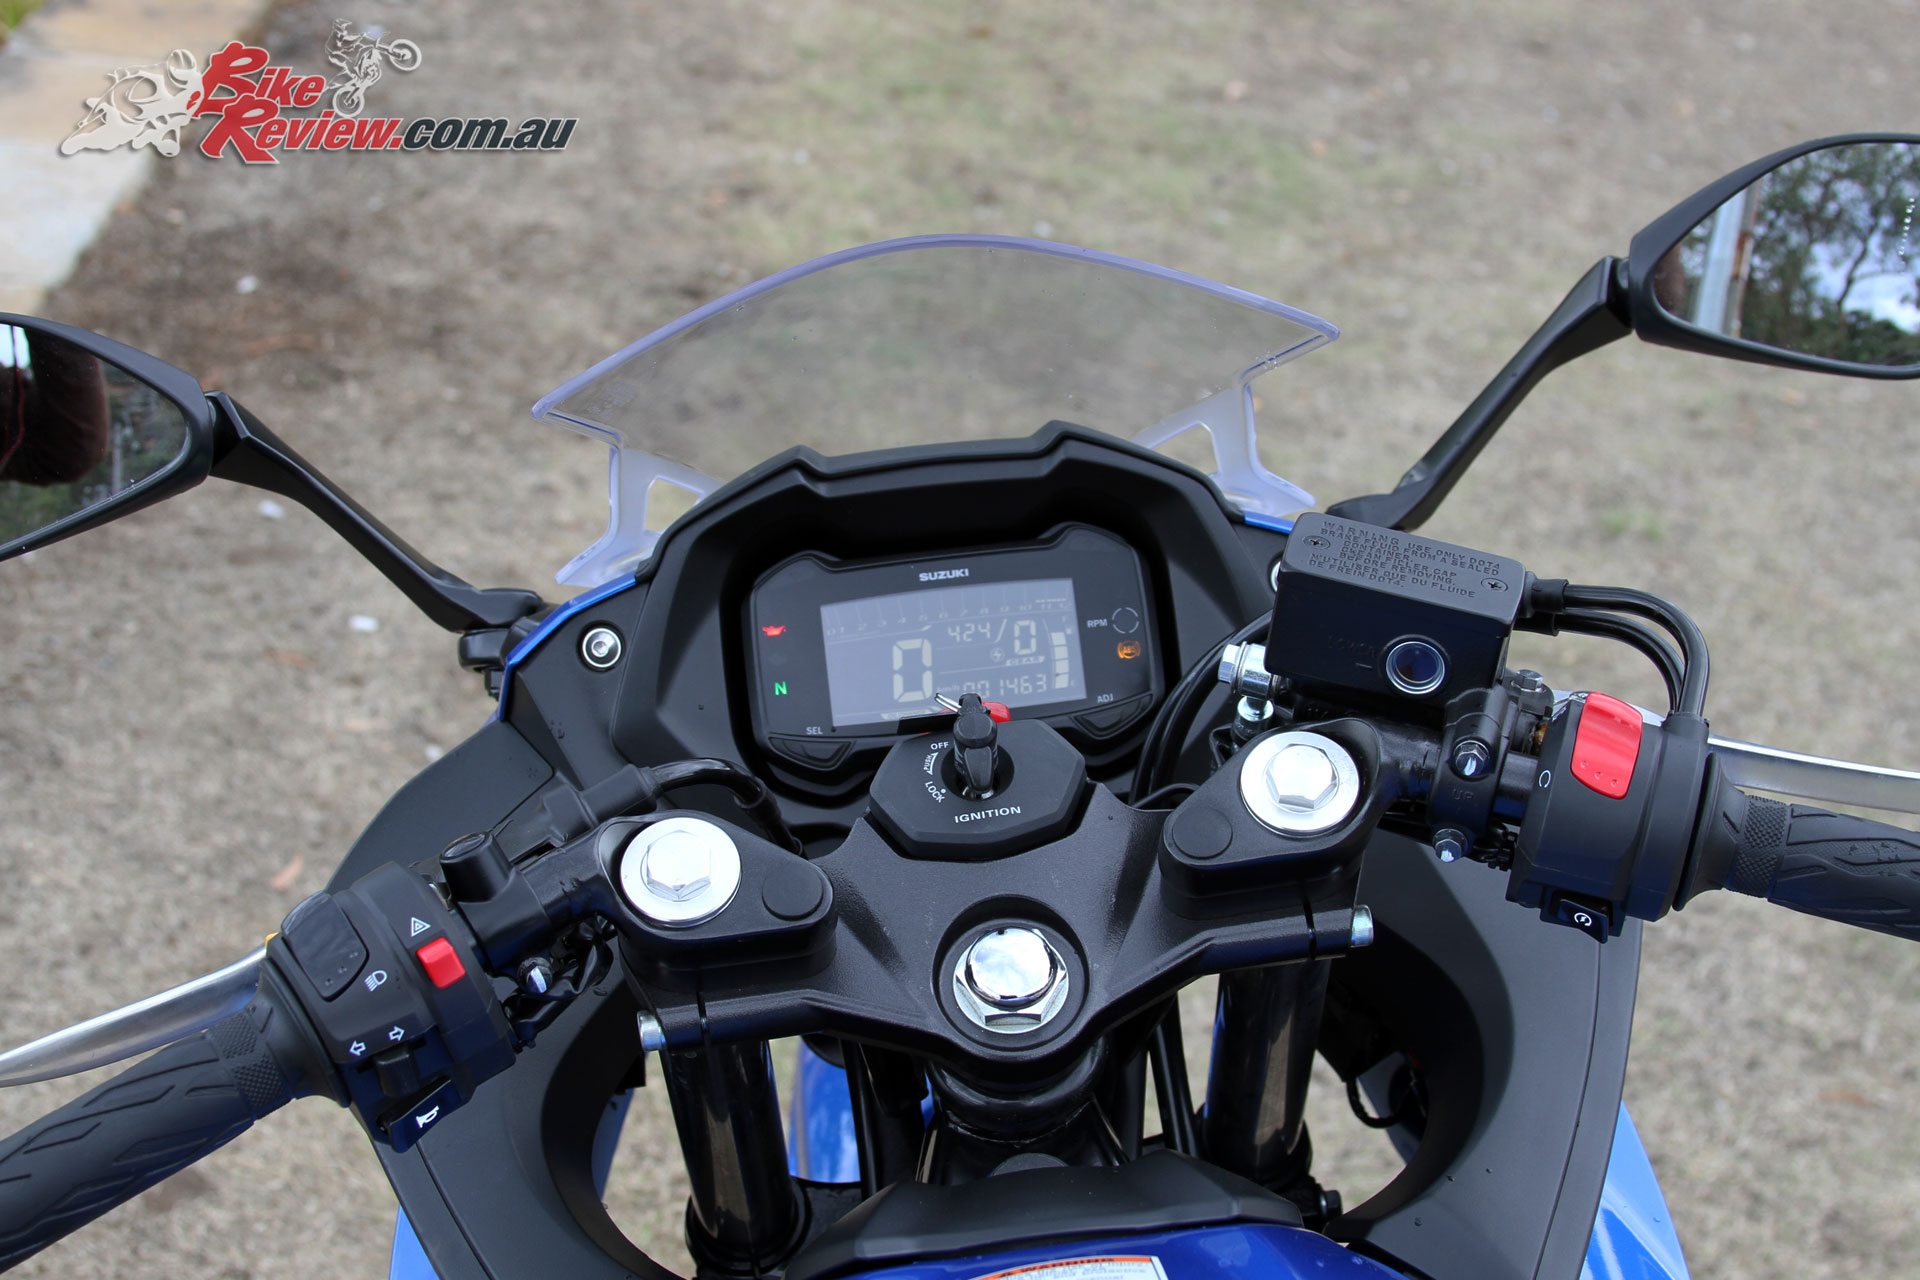 The GSX250R offers an LCD display with gear indicator and clearly visible indicator lights, while vision through the mirrors is good if not amazing